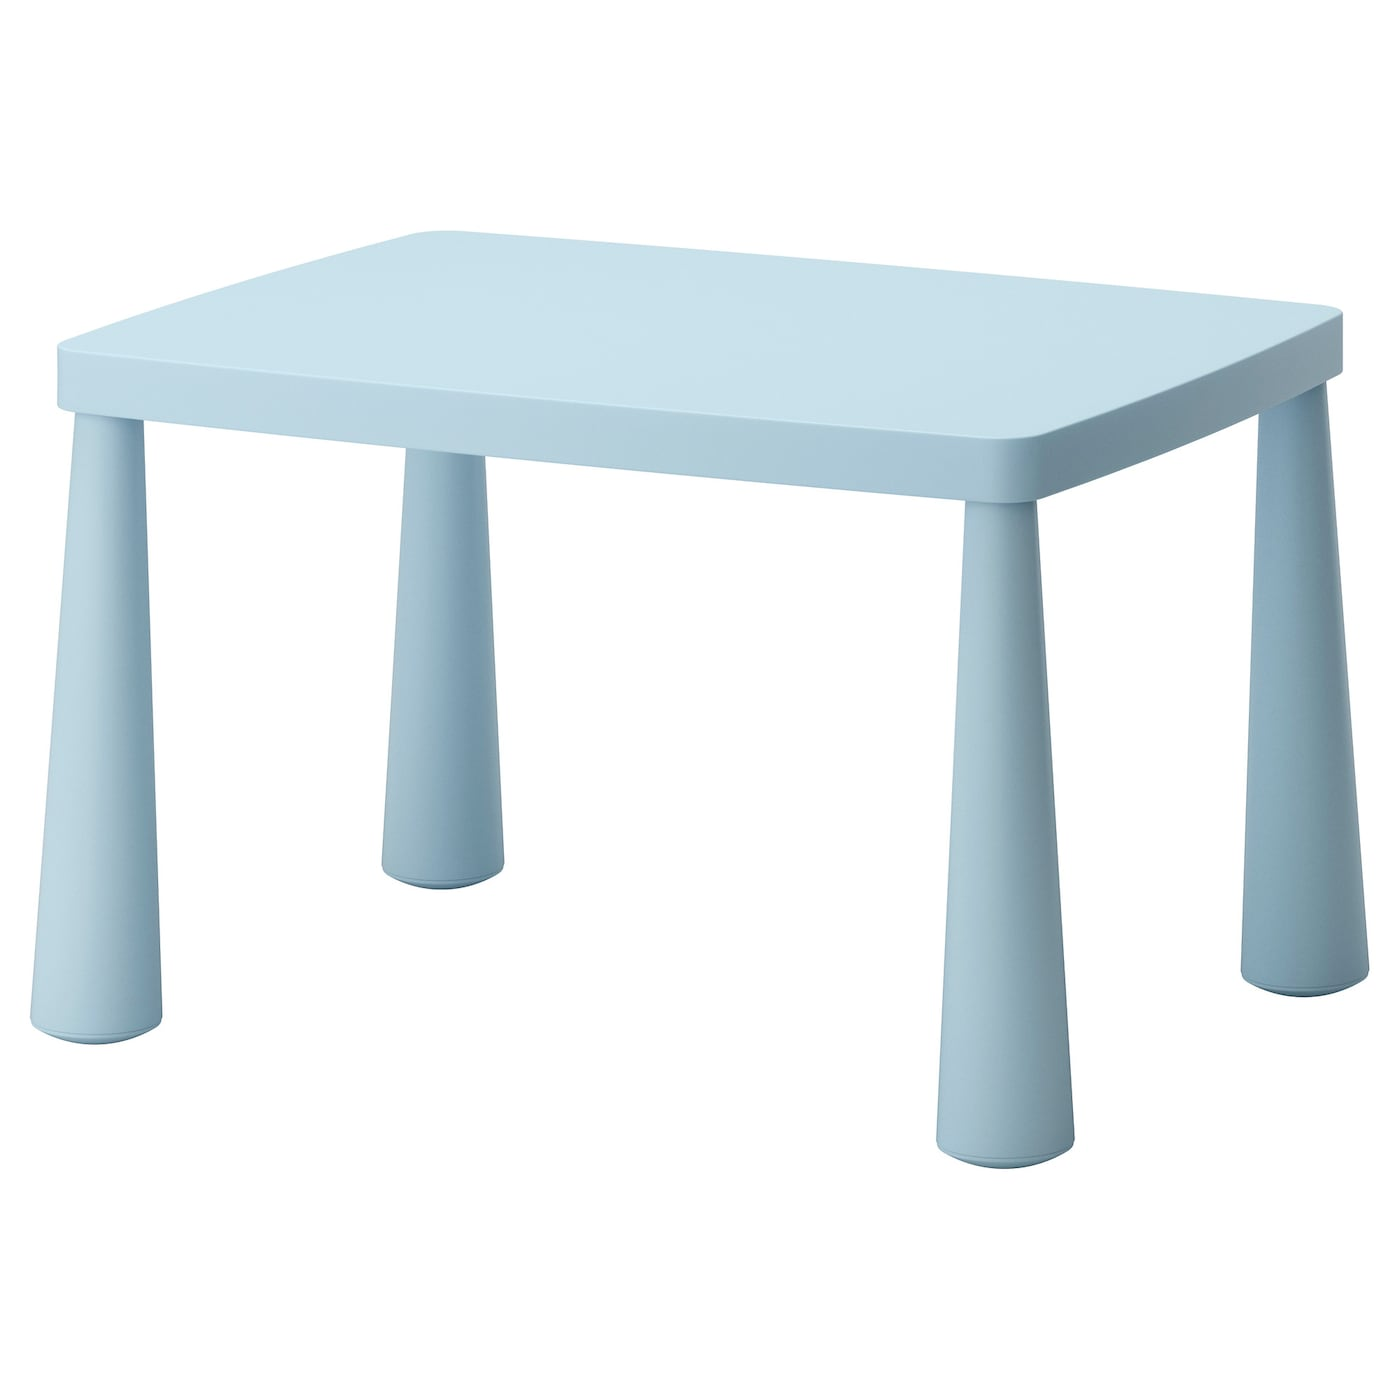 Mammut children 39 s table in outdoor light blue 77x55 cm ikea for Table chaise ikea